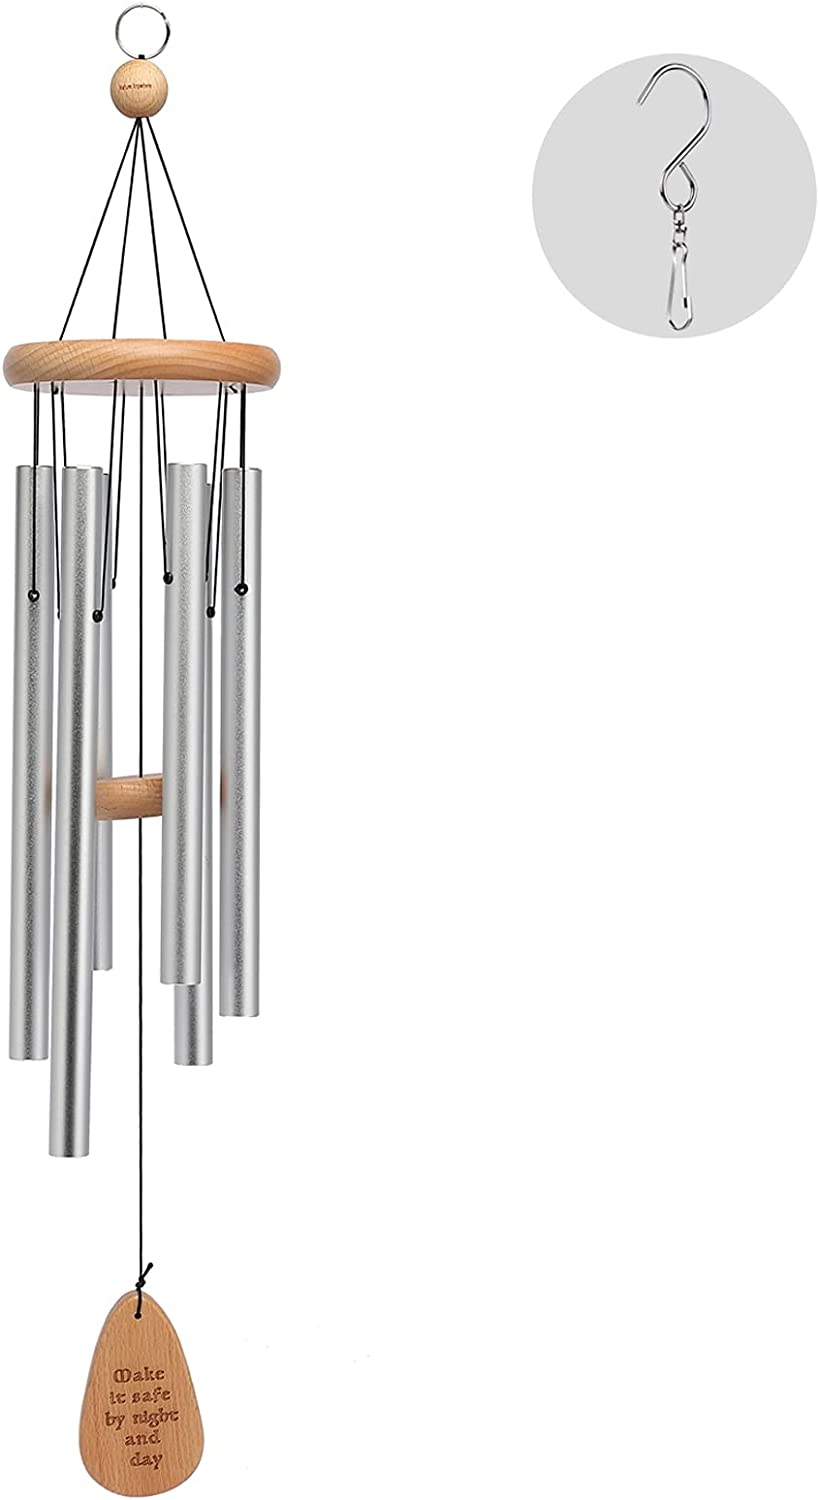 Epartswide Memorial Wind Chimes for Loss of Loved One 30